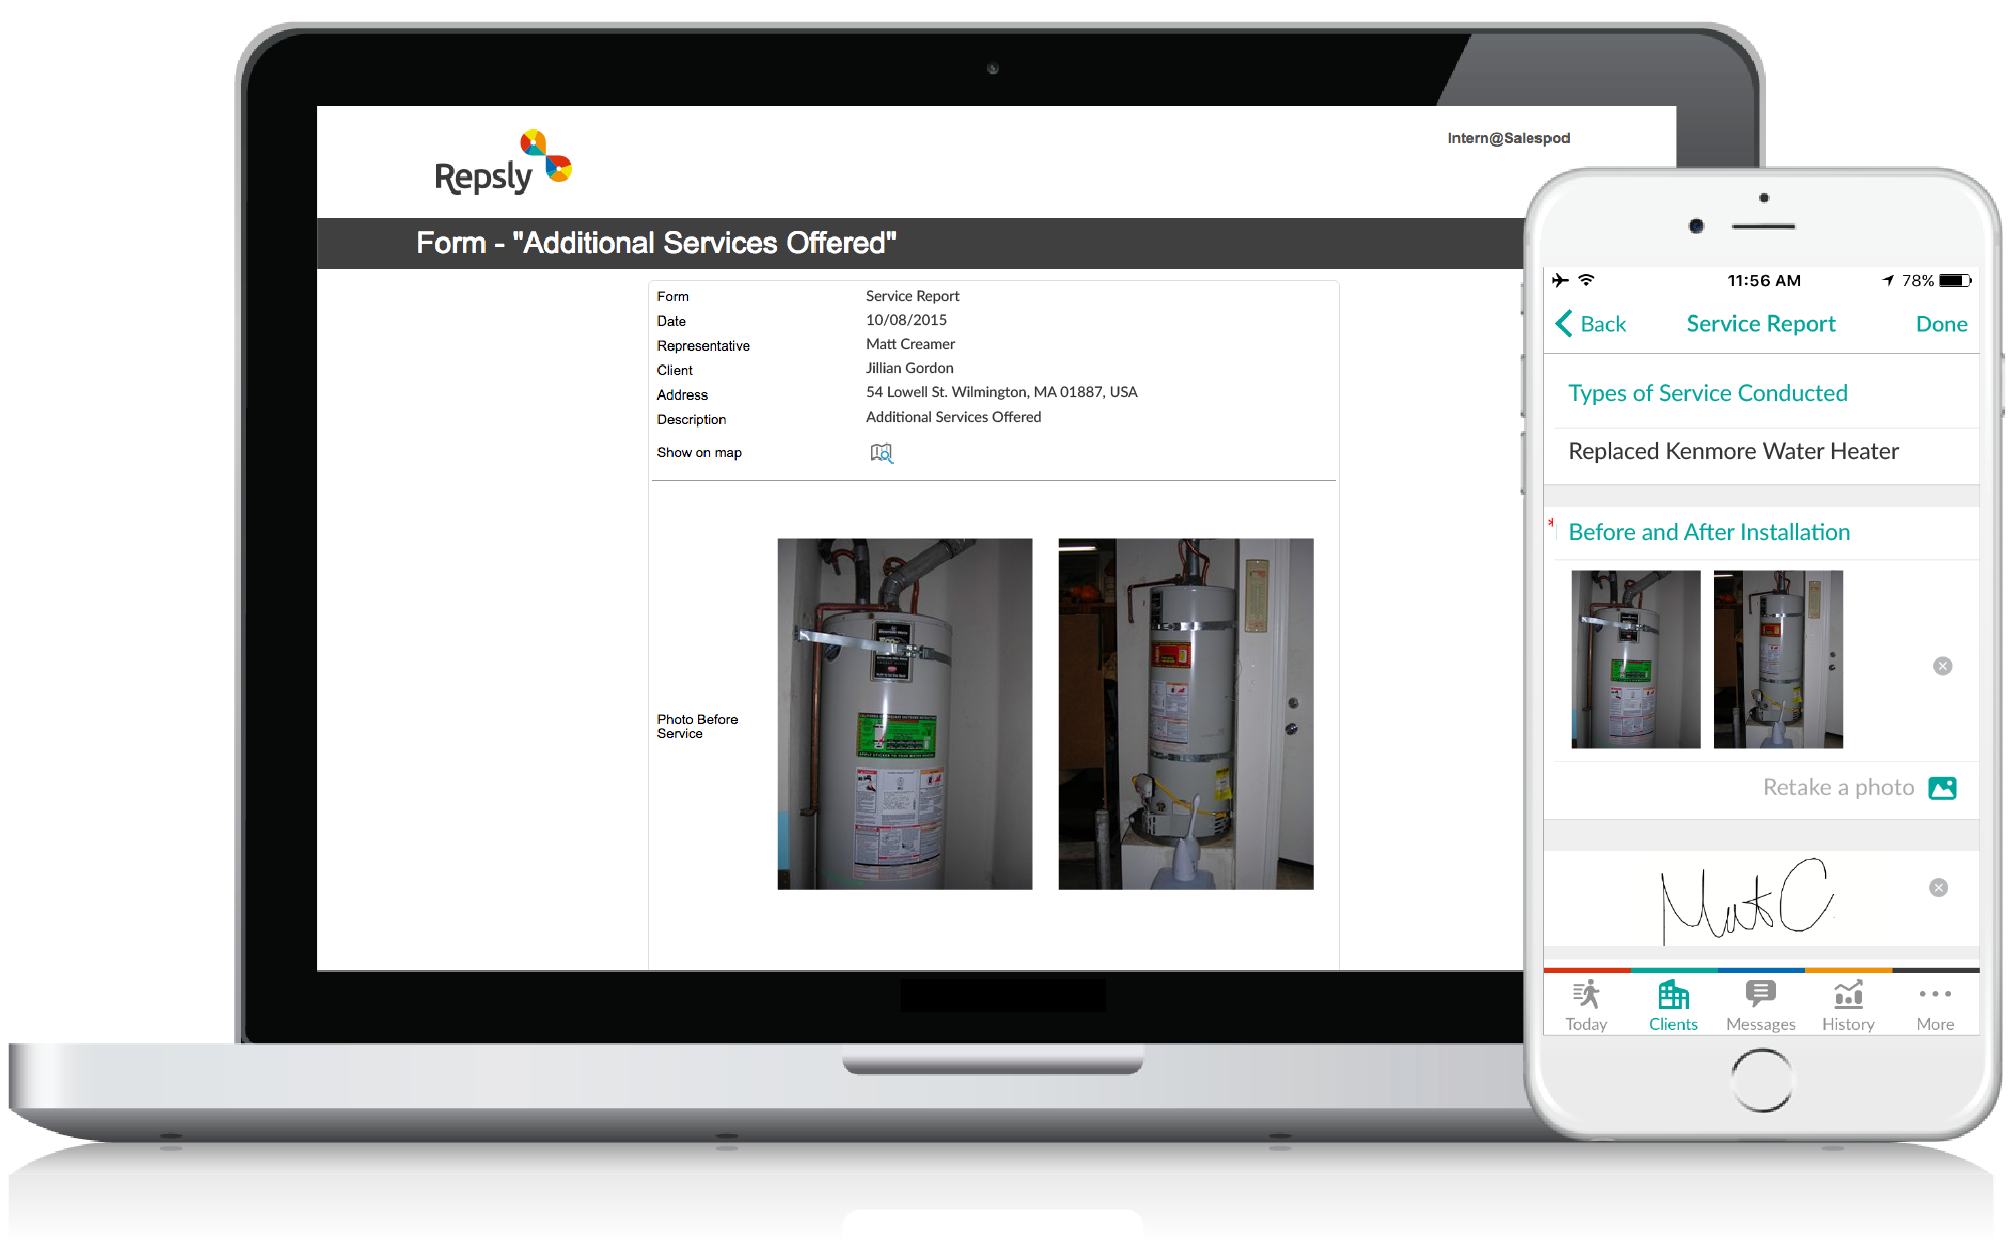 Plumbing Service Software Mobile forms